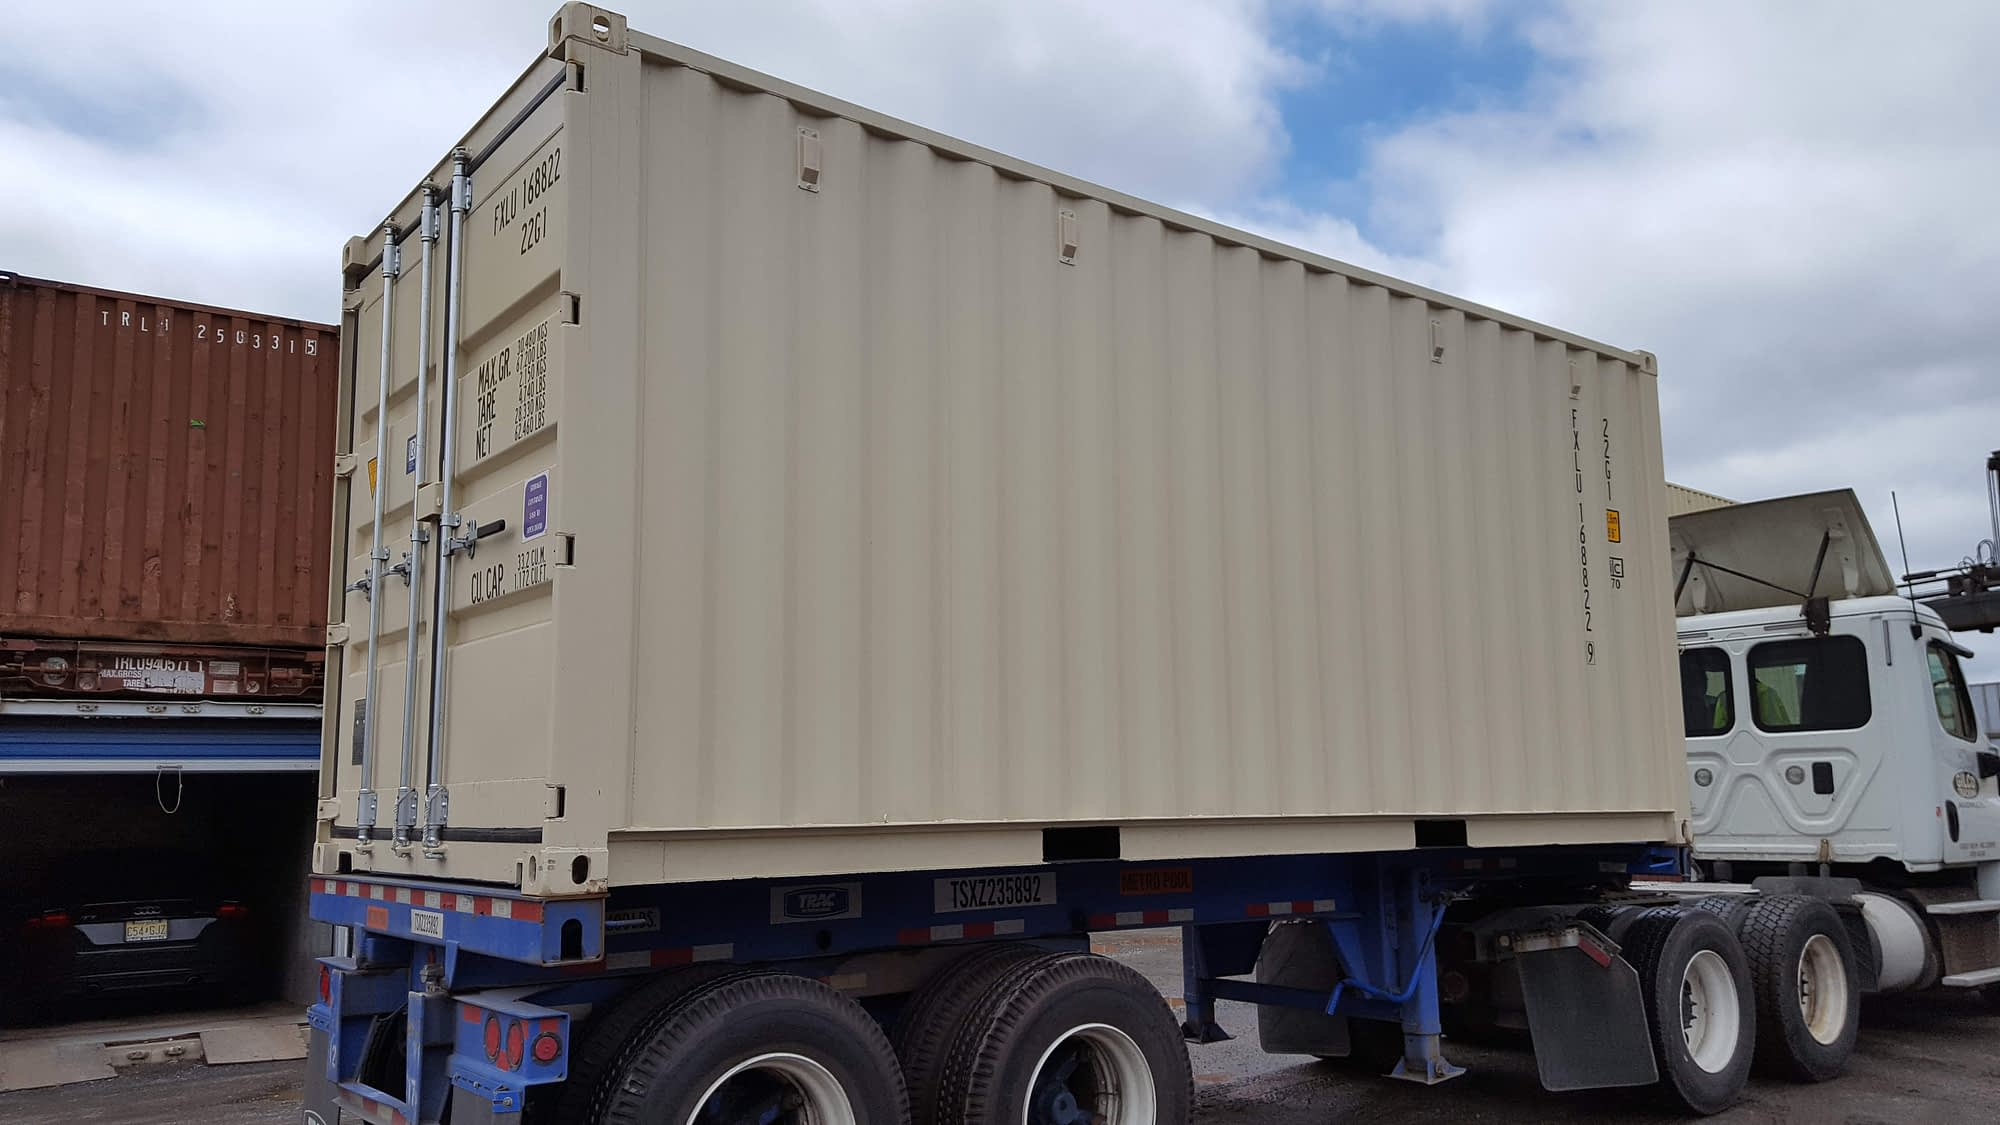 TRS full service depot sells rents modifies transports containers and chassis